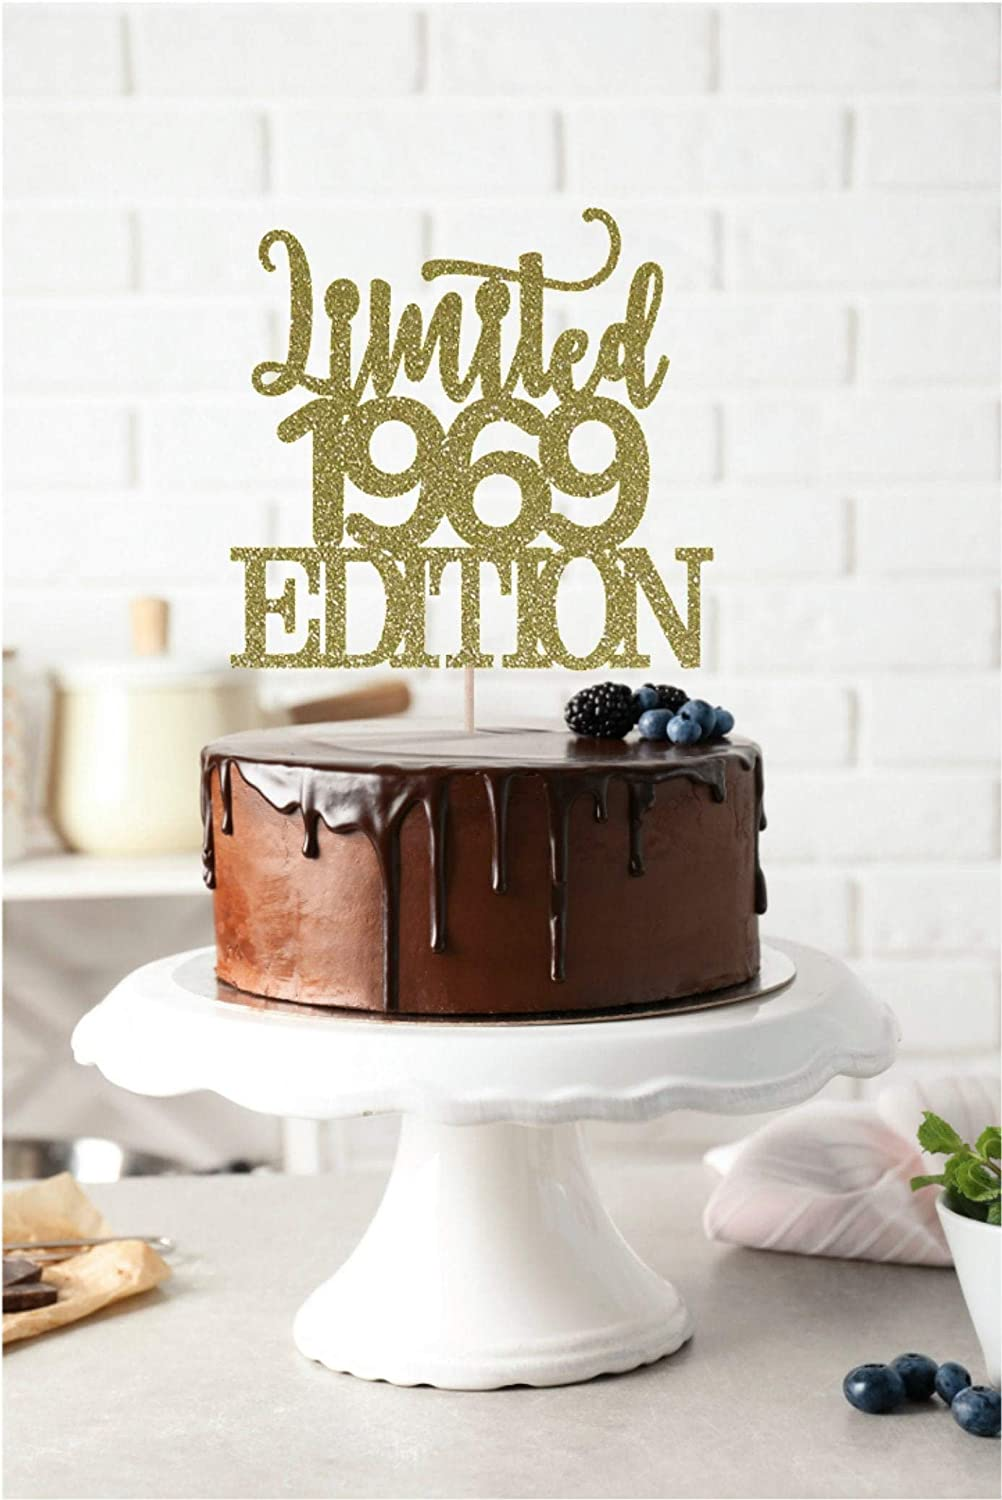 Stupendous Limited 1969 Edition Cake Topper Birth Year Cake Topper 50Th Personalised Birthday Cards Vishlily Jamesorg